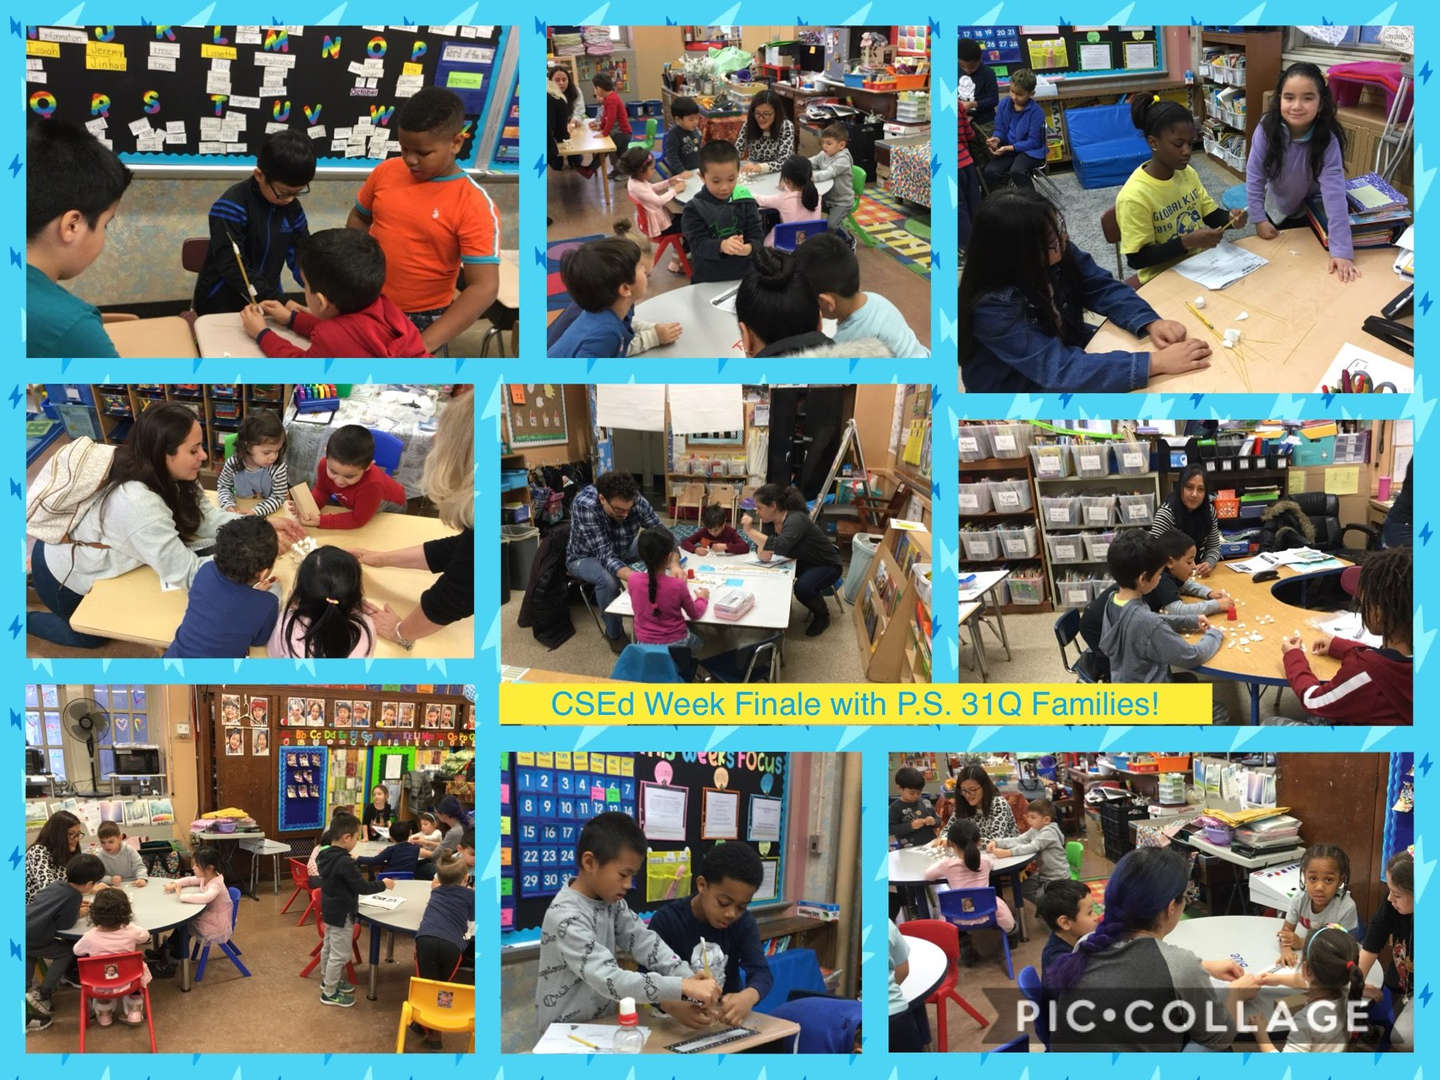 CSED Week Finale, Family Activity Collage 8